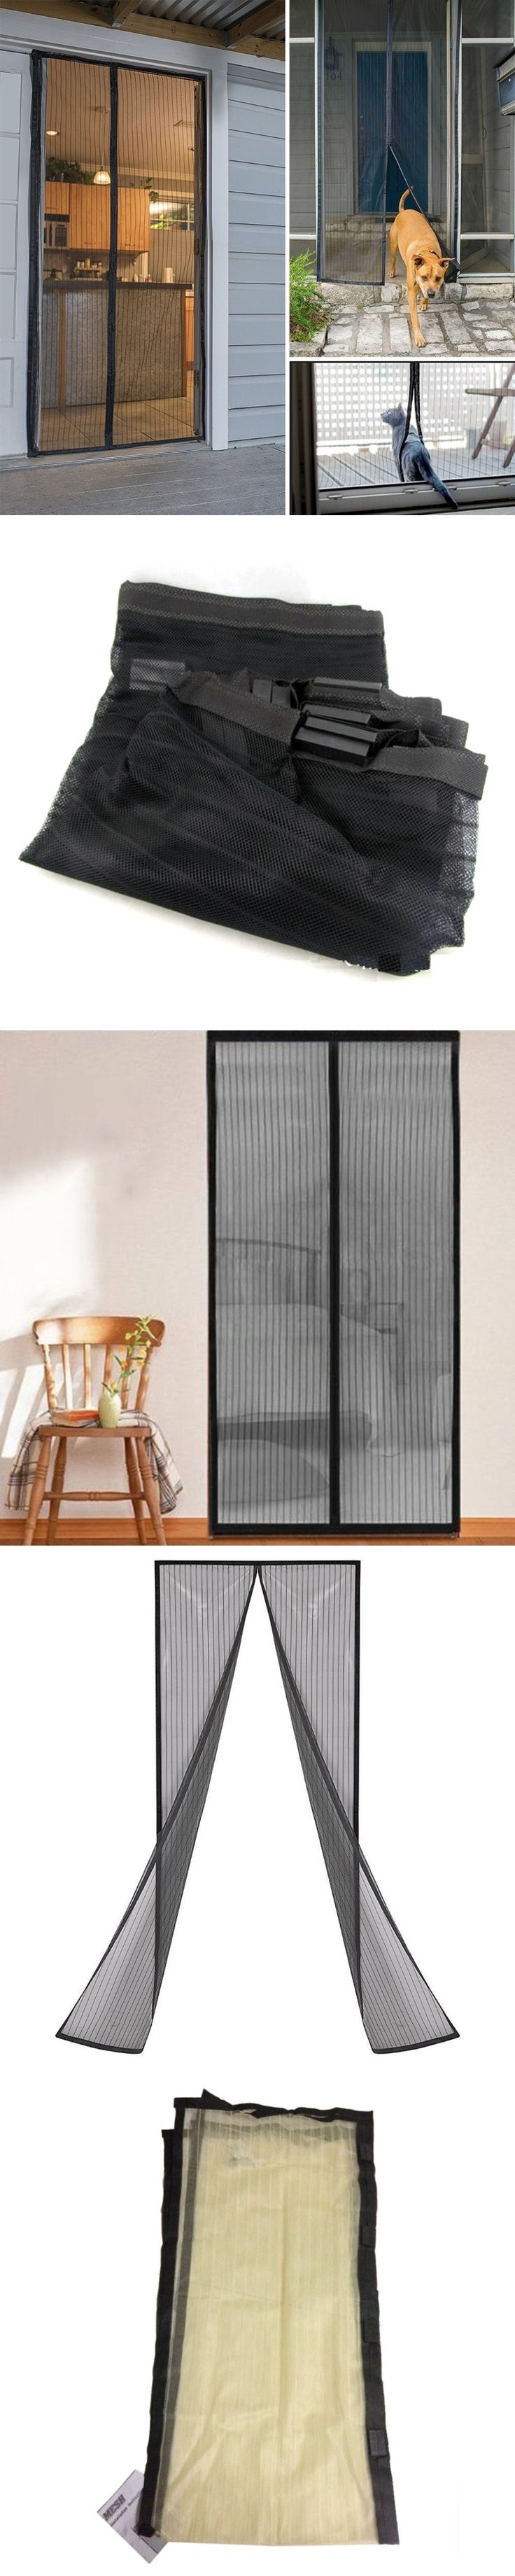 2.1*1m Hands Free Door Screen Curtain Magnetic Screen Door Mosquito Net Door Anti Mosquito Curtains Screen Fly Insect Stop Net